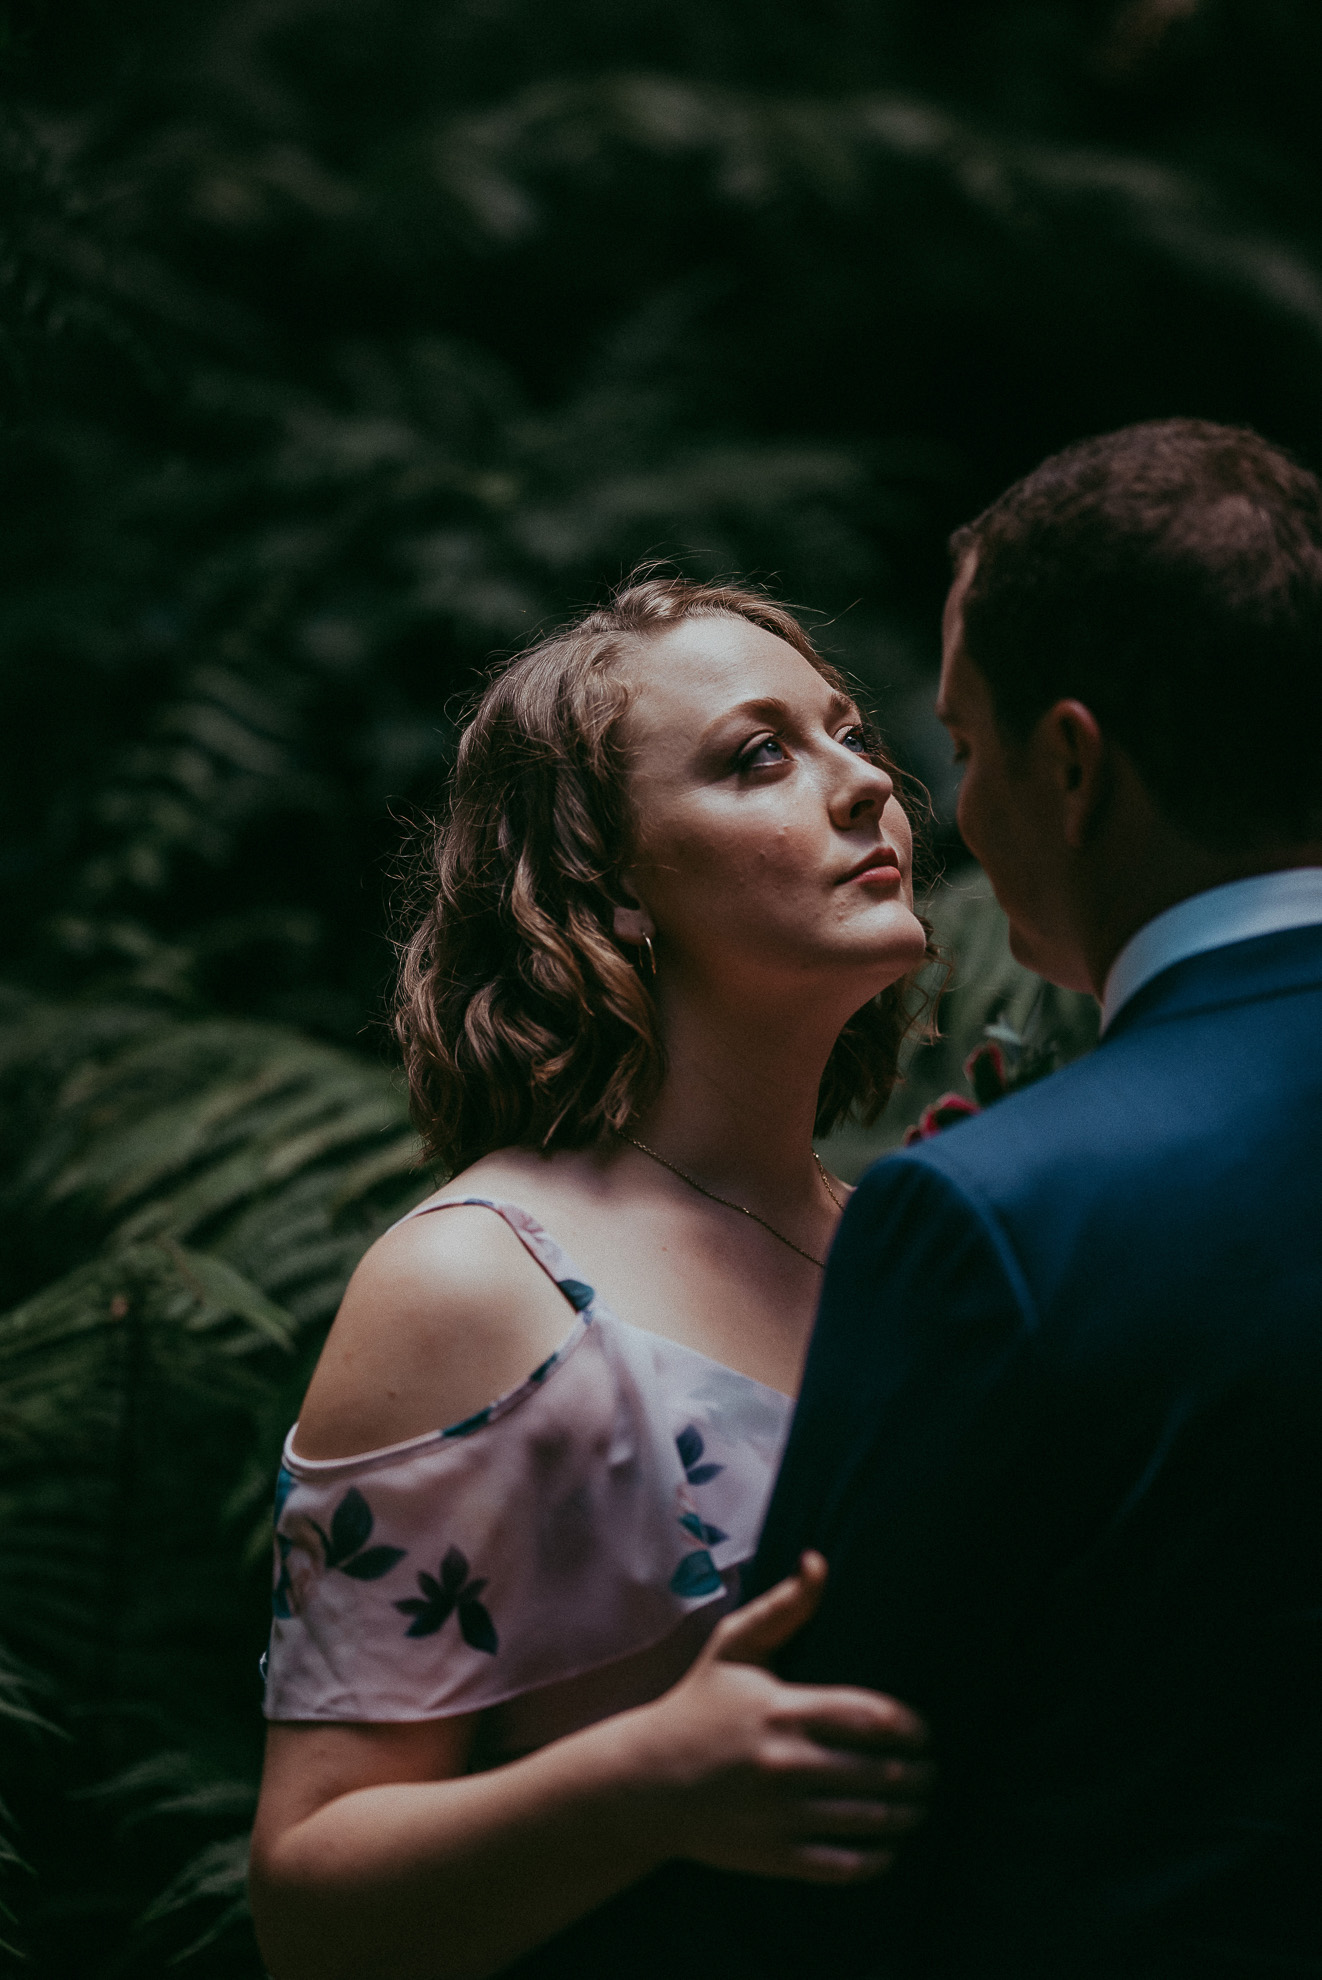 Auckland City + Domain elopement: Bianca and Matt {New Zealand wedding photographer}